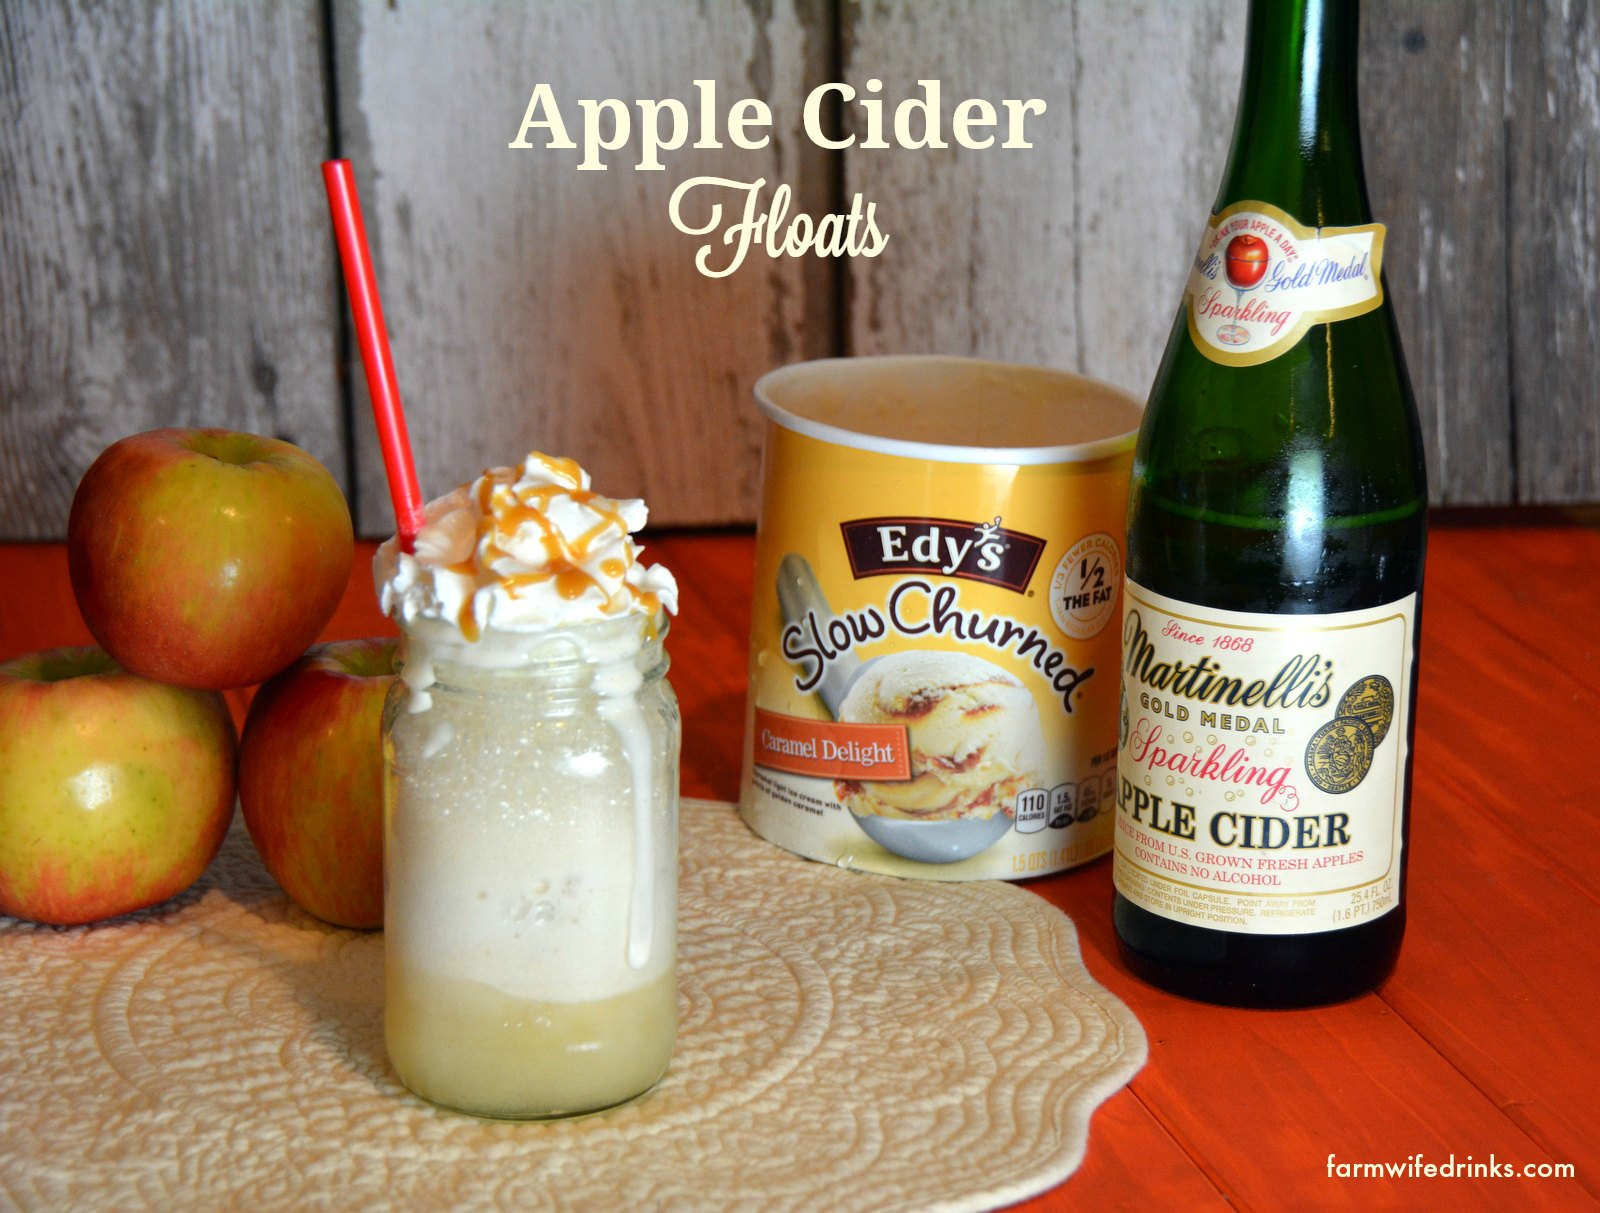 Apple Cider Floats - The Farmwife Drinks